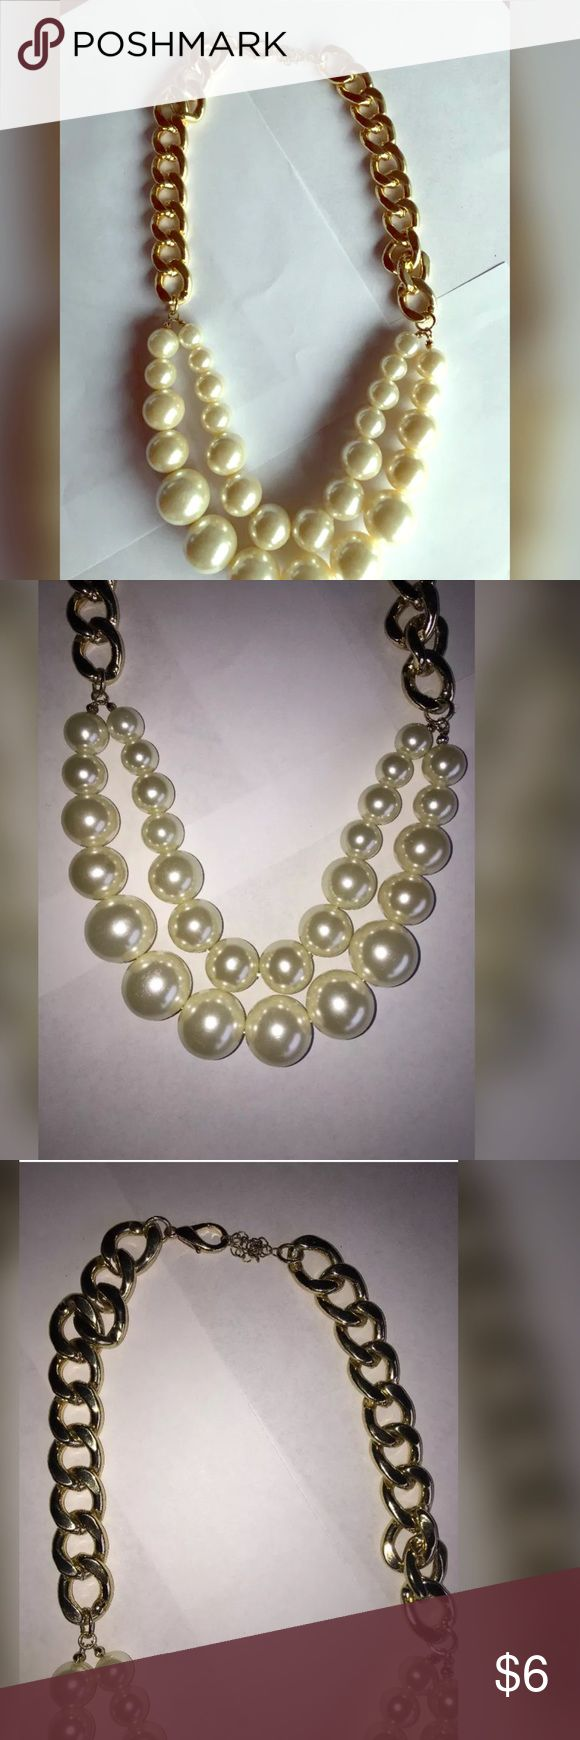 Re-posh Chunky pearl necklace Brand new I could never find anything to wear with it. Jewelry Necklaces